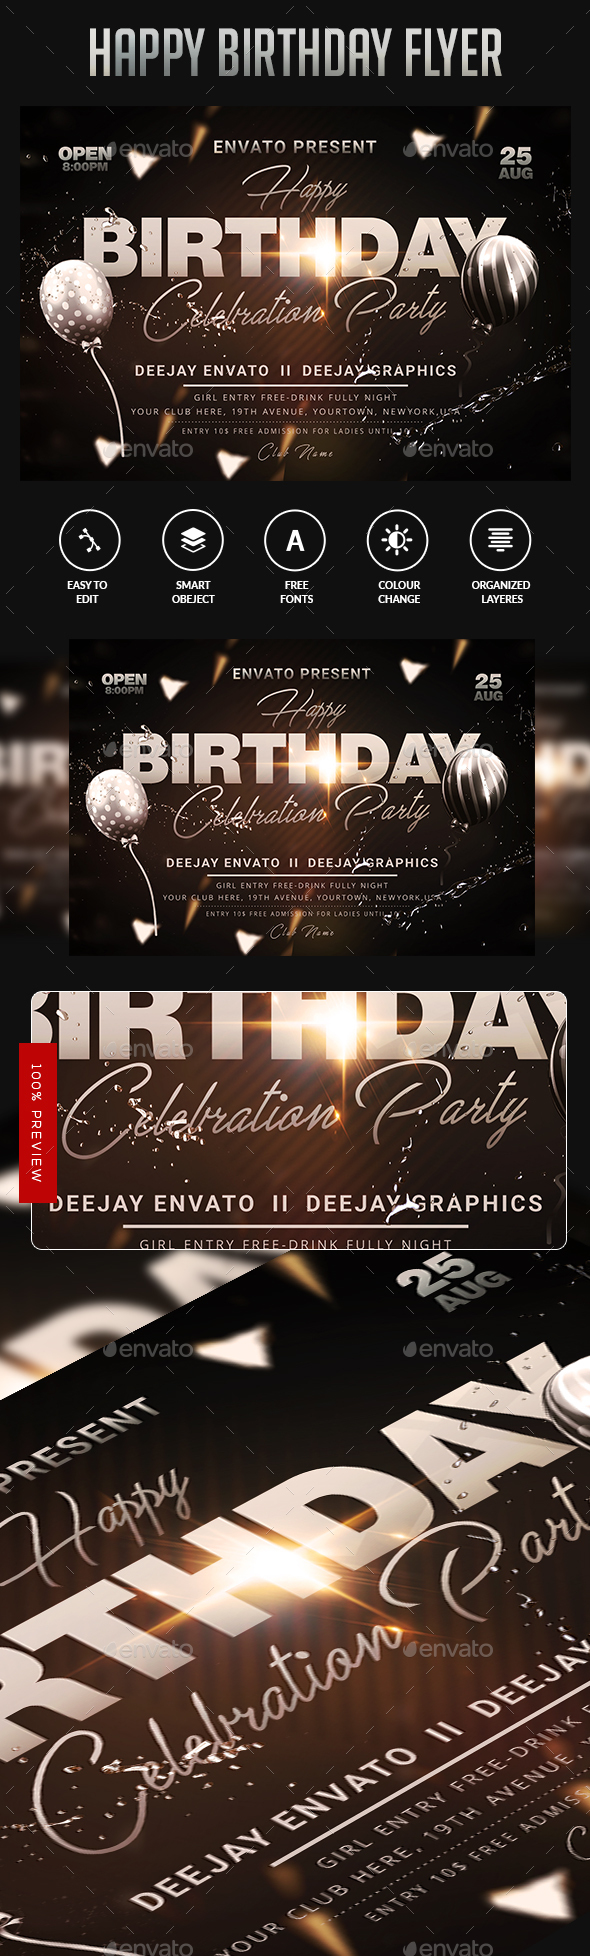 Flyers PSD – Burfday  Template – Download